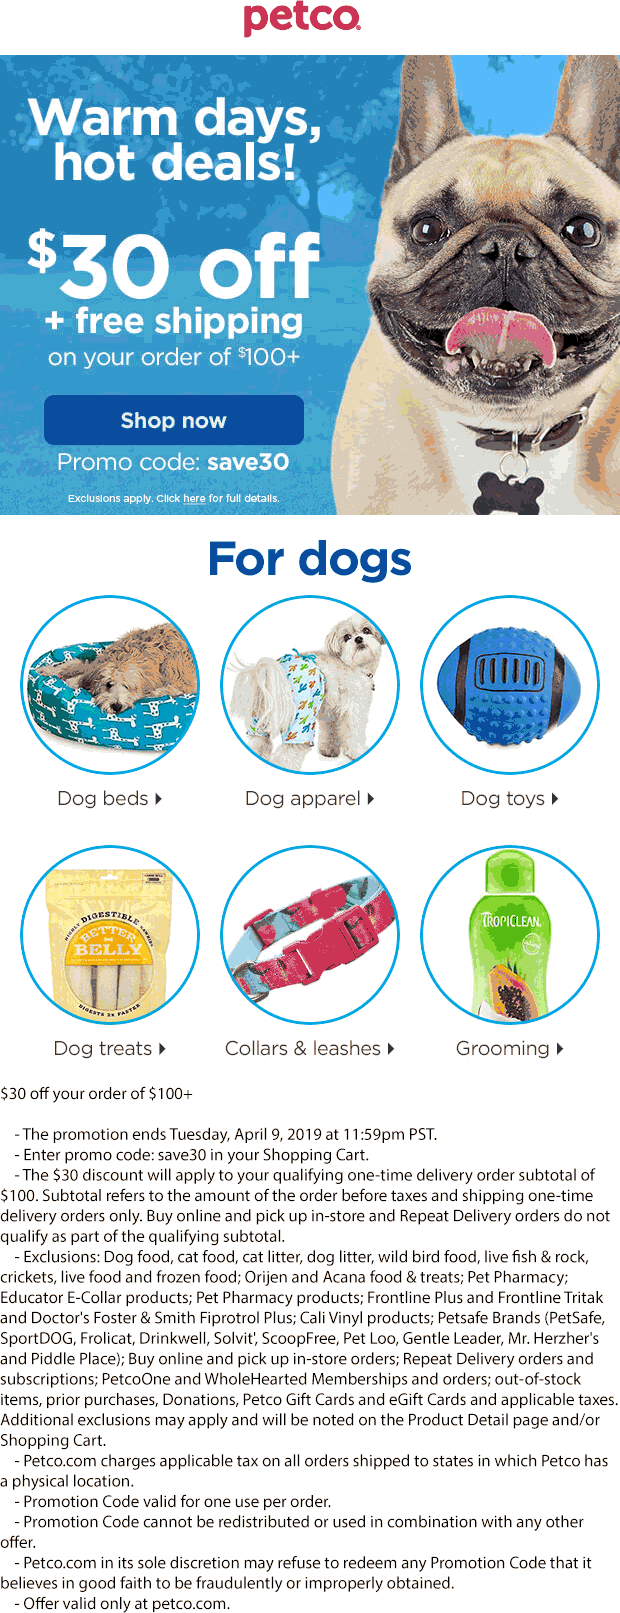 Petco Coupon January 2020 $30 off $100 online at Petco via promo code save30